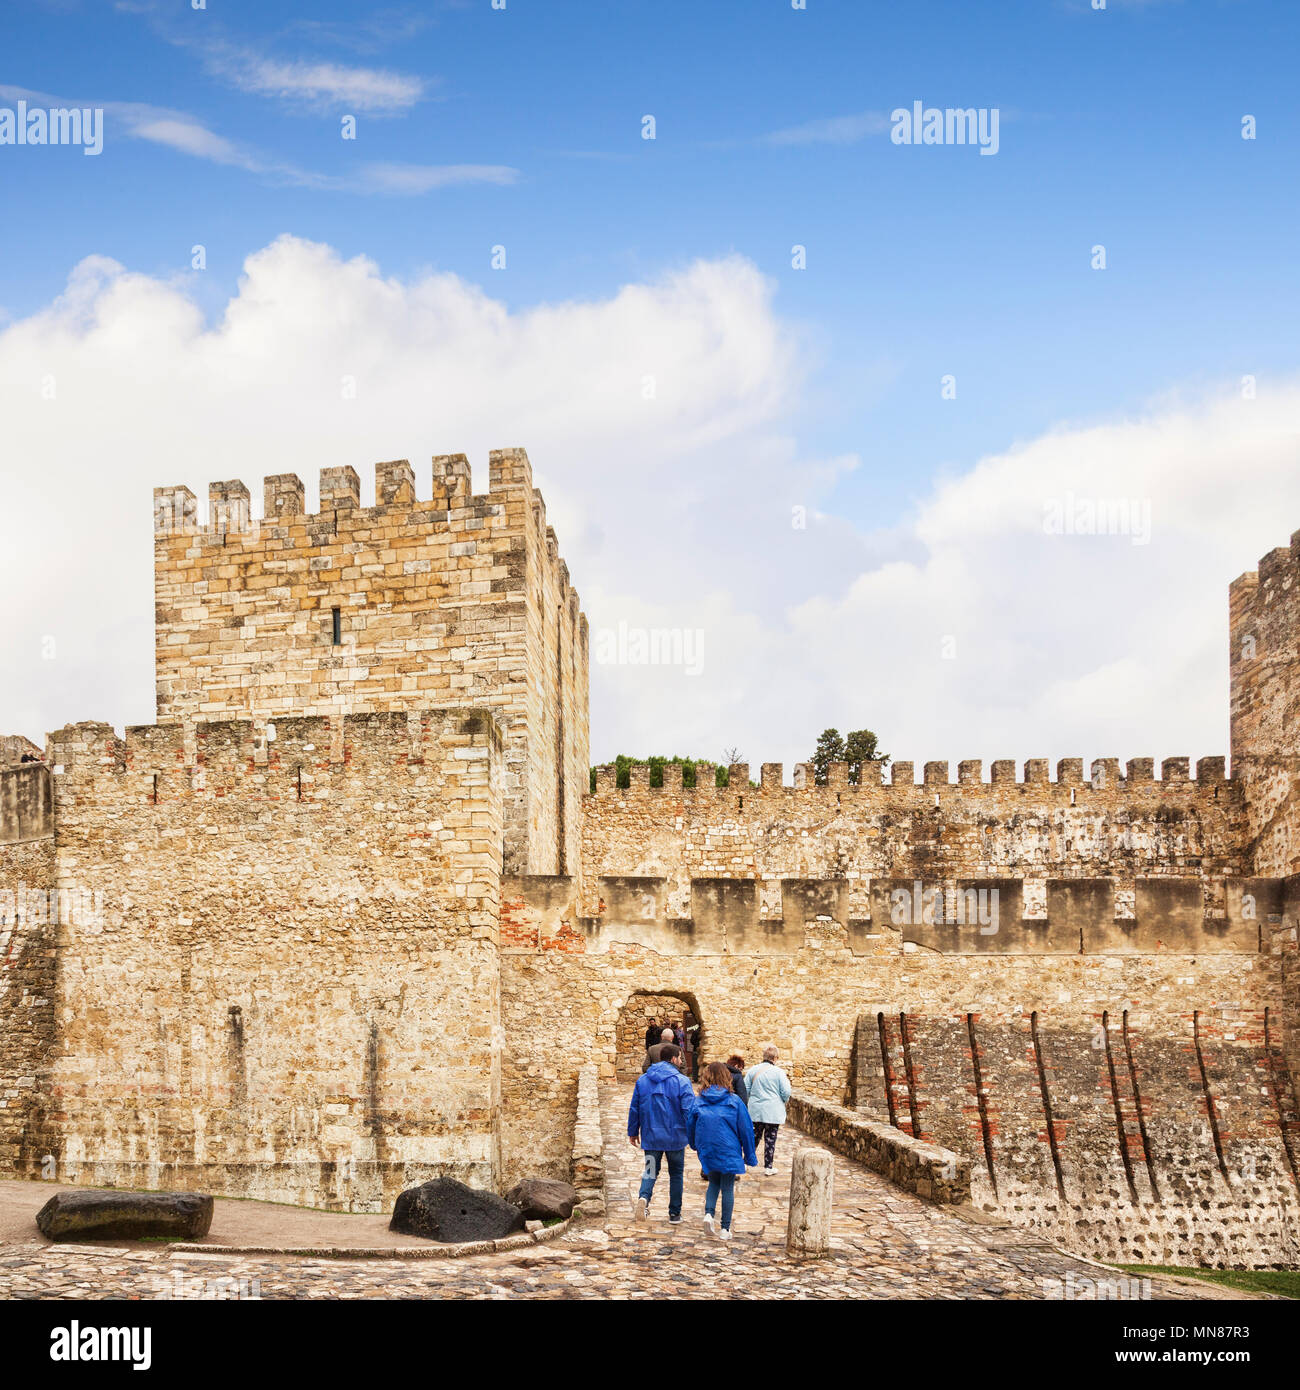 1 March 2018: Lisbon Portugal - Tourists entering Castle of St George. - Stock Image